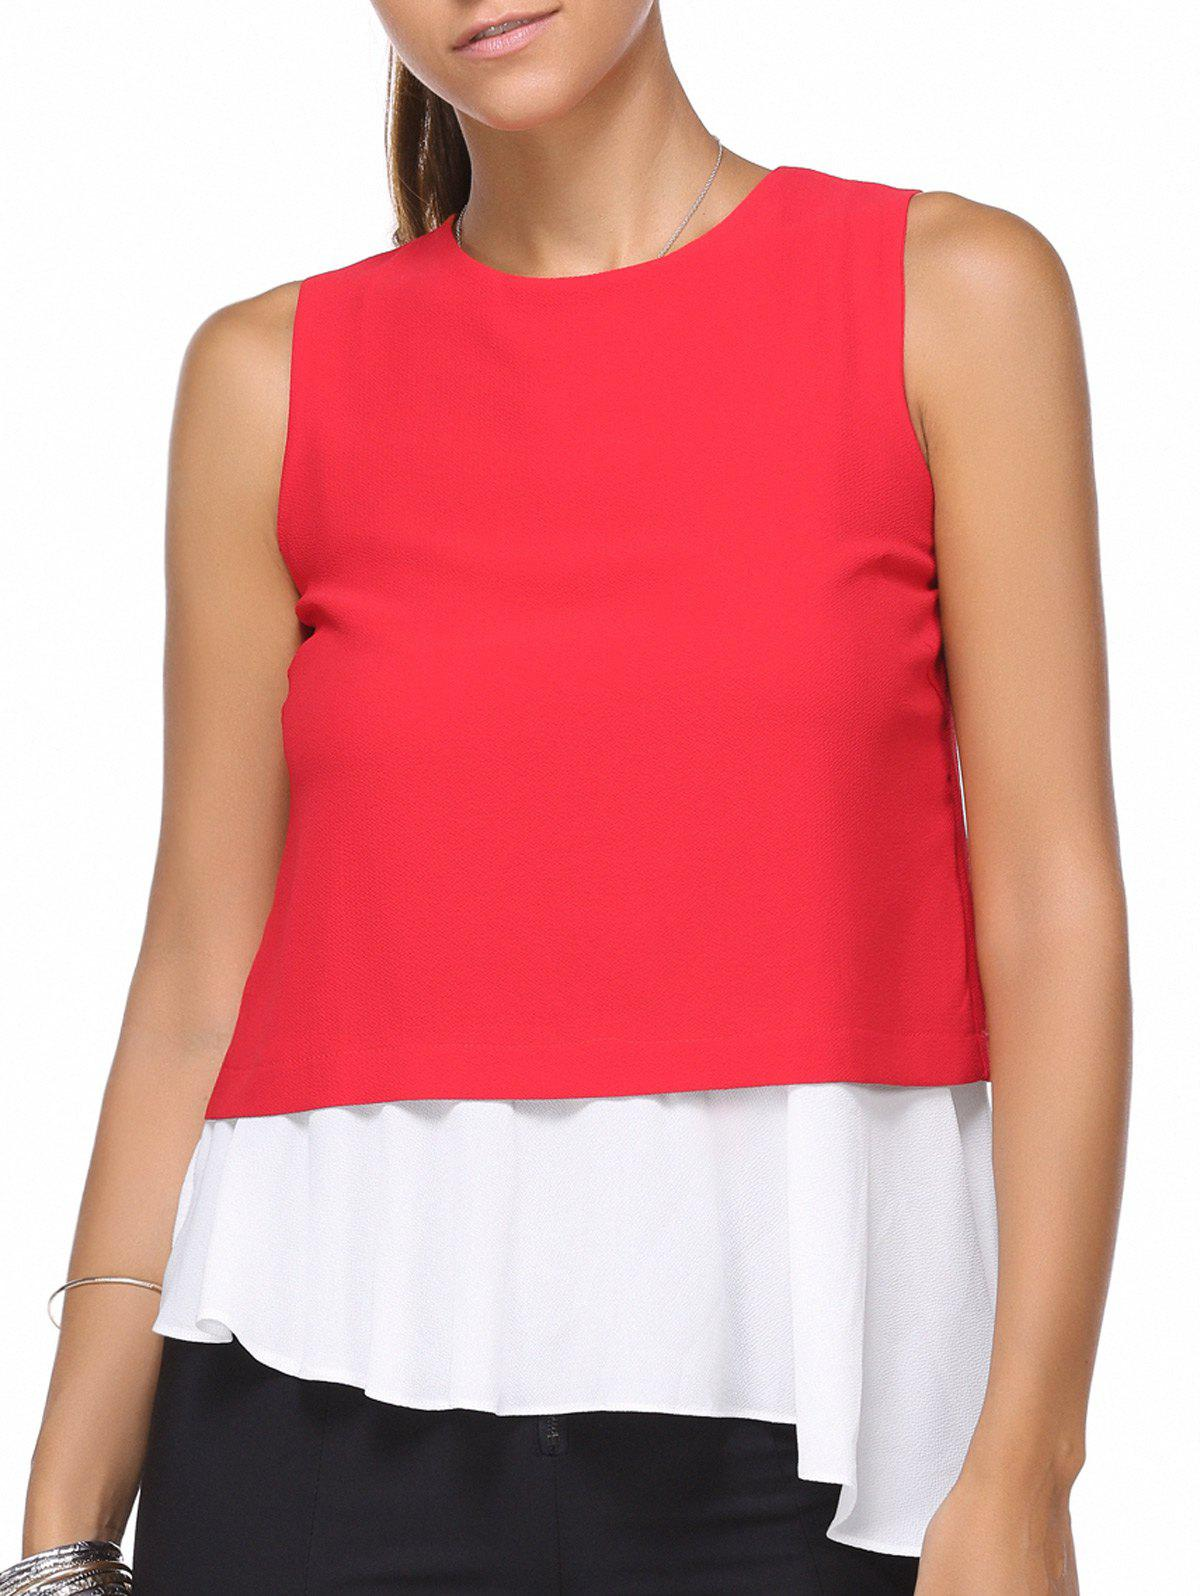 Color Block Asymmetrical Sleeveless Blouse - RED ONE SIZE(FIT SIZE XS TO M)